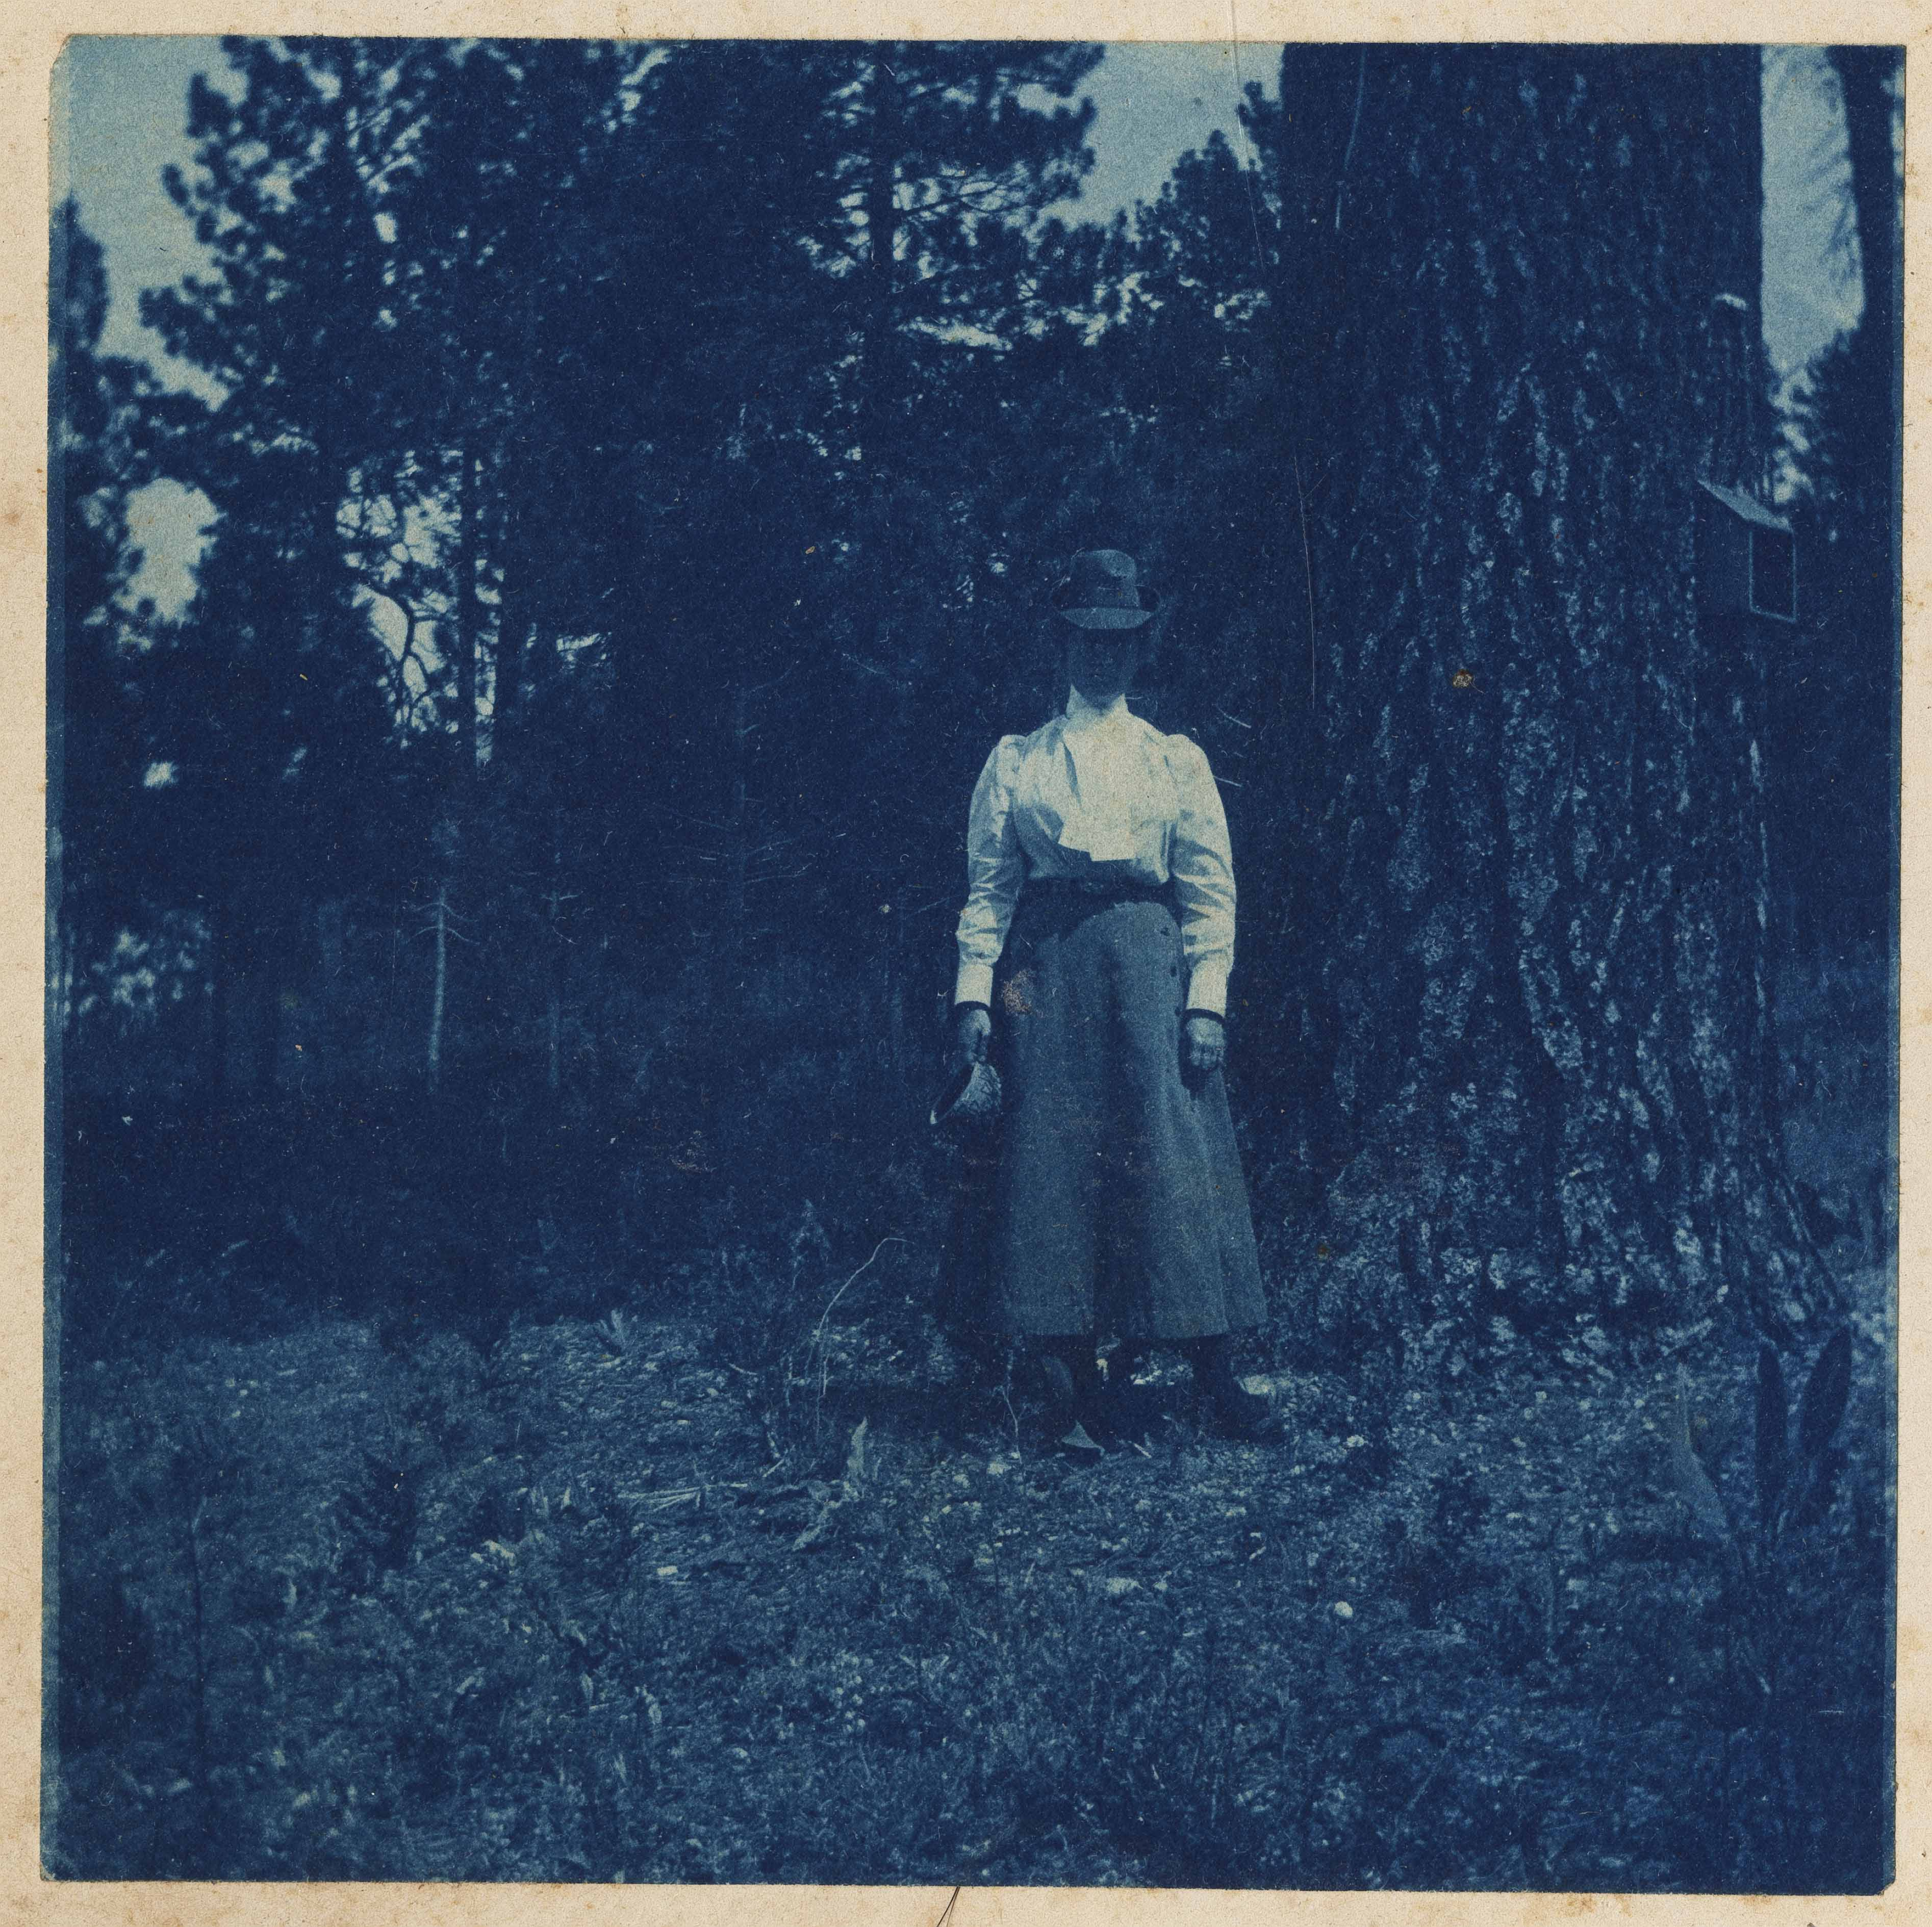 Victorian era woman to right of large pine tree